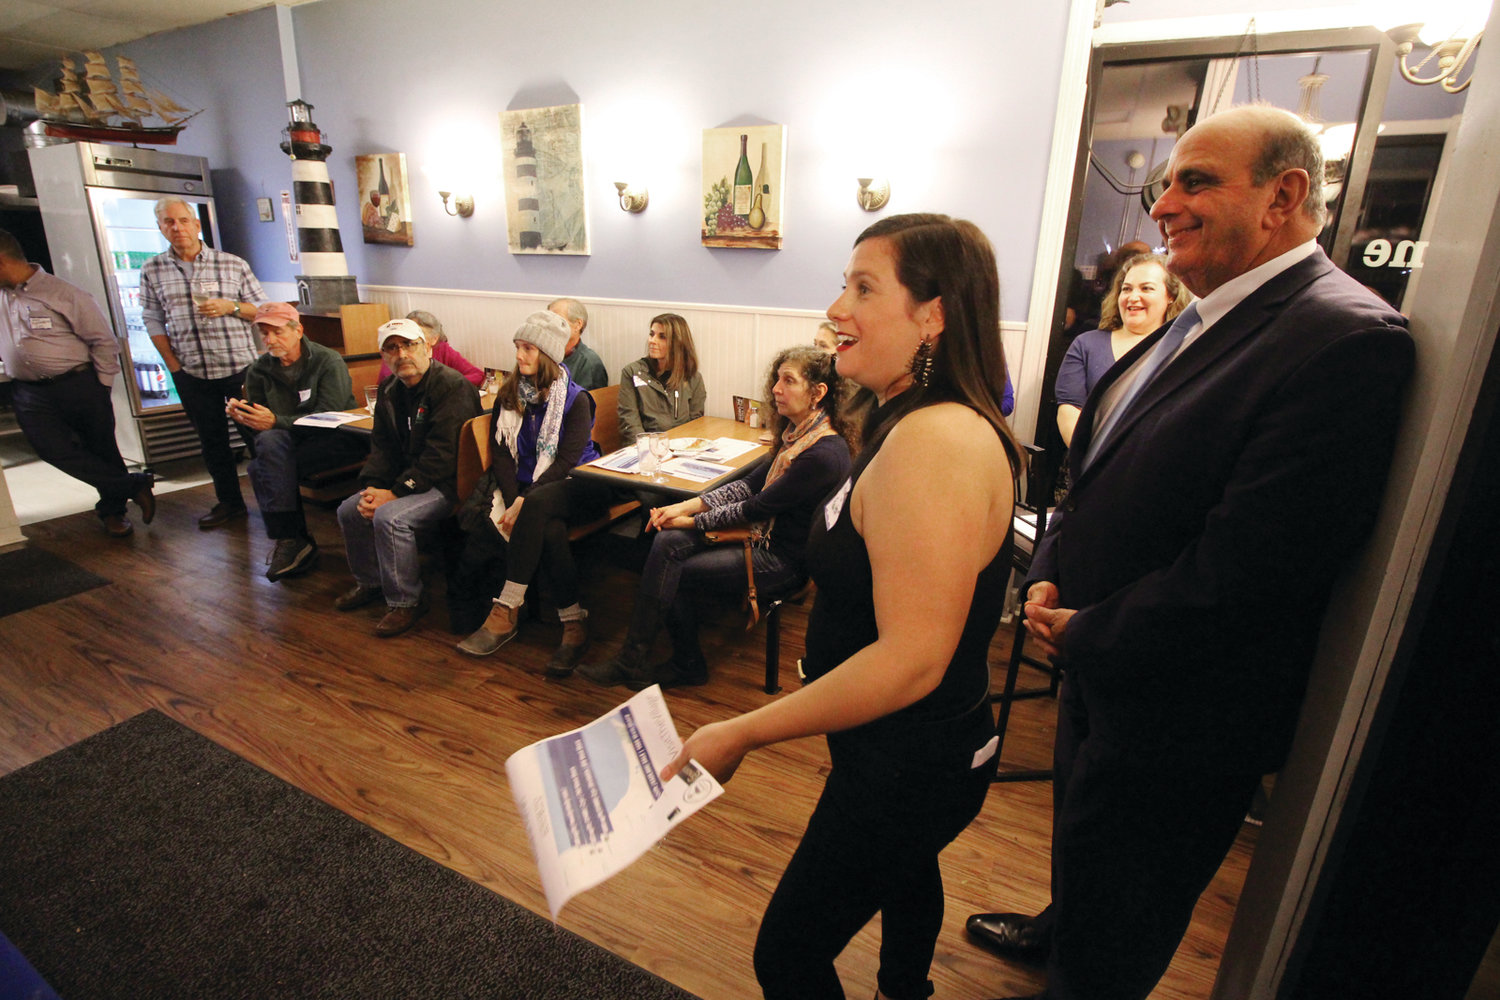 SUCCESS AT SHORELINE: Realtor Meg Mut addresses the crowd gathered for Conimicut's Business Open House last Wednesday at Shoreline Pizza, alongside Mayor Joseph Solomon.